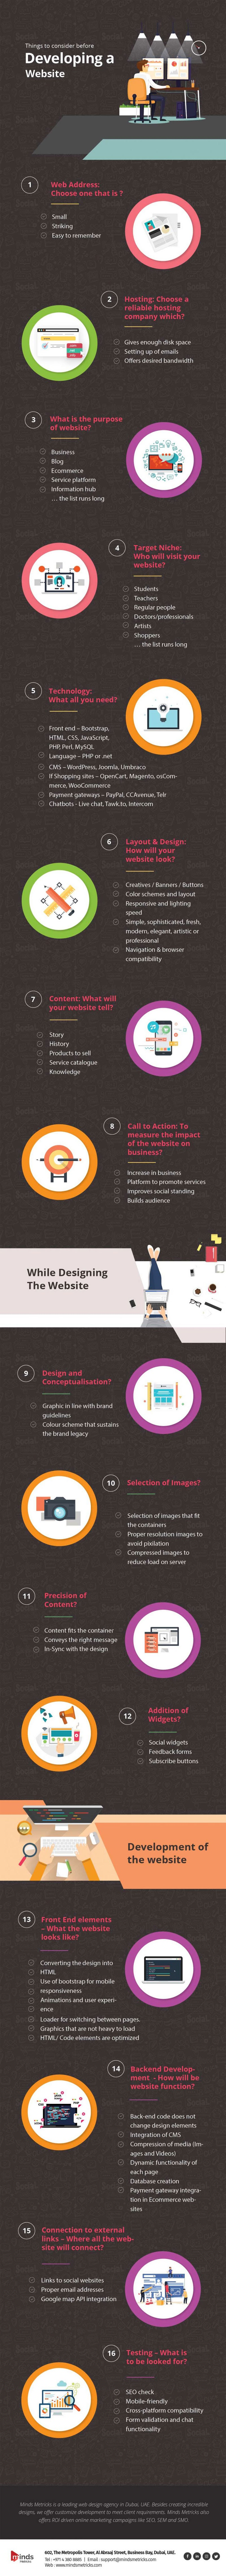 Things to consider when web site development #infographic